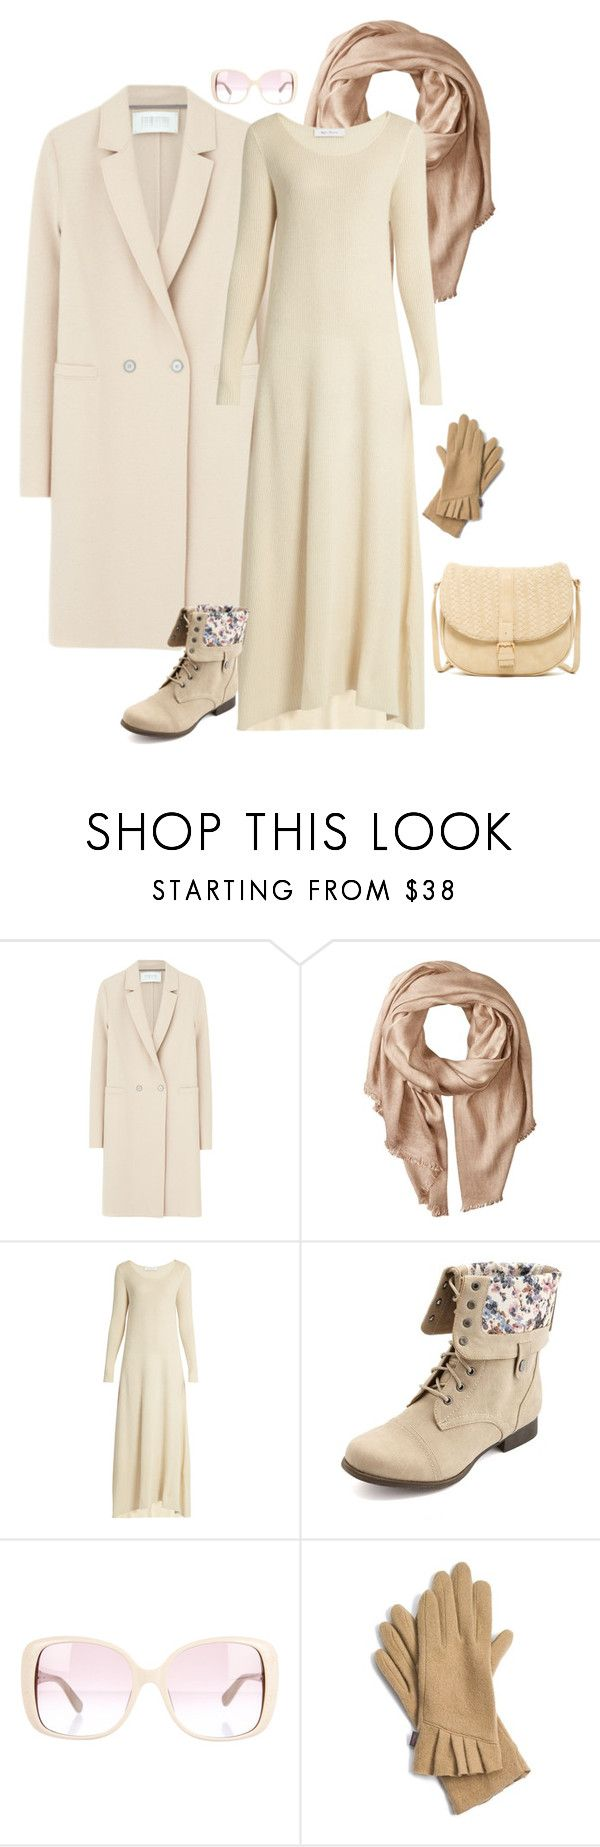 """Outfit 509"" by chicagomuslima ❤ liked on Polyvore featuring Harris Wharf London, Michael Stars, Ryan Roche, Charlotte Russe, Valentino, Echo, Deux Lux, winterstyle and maxistyle"